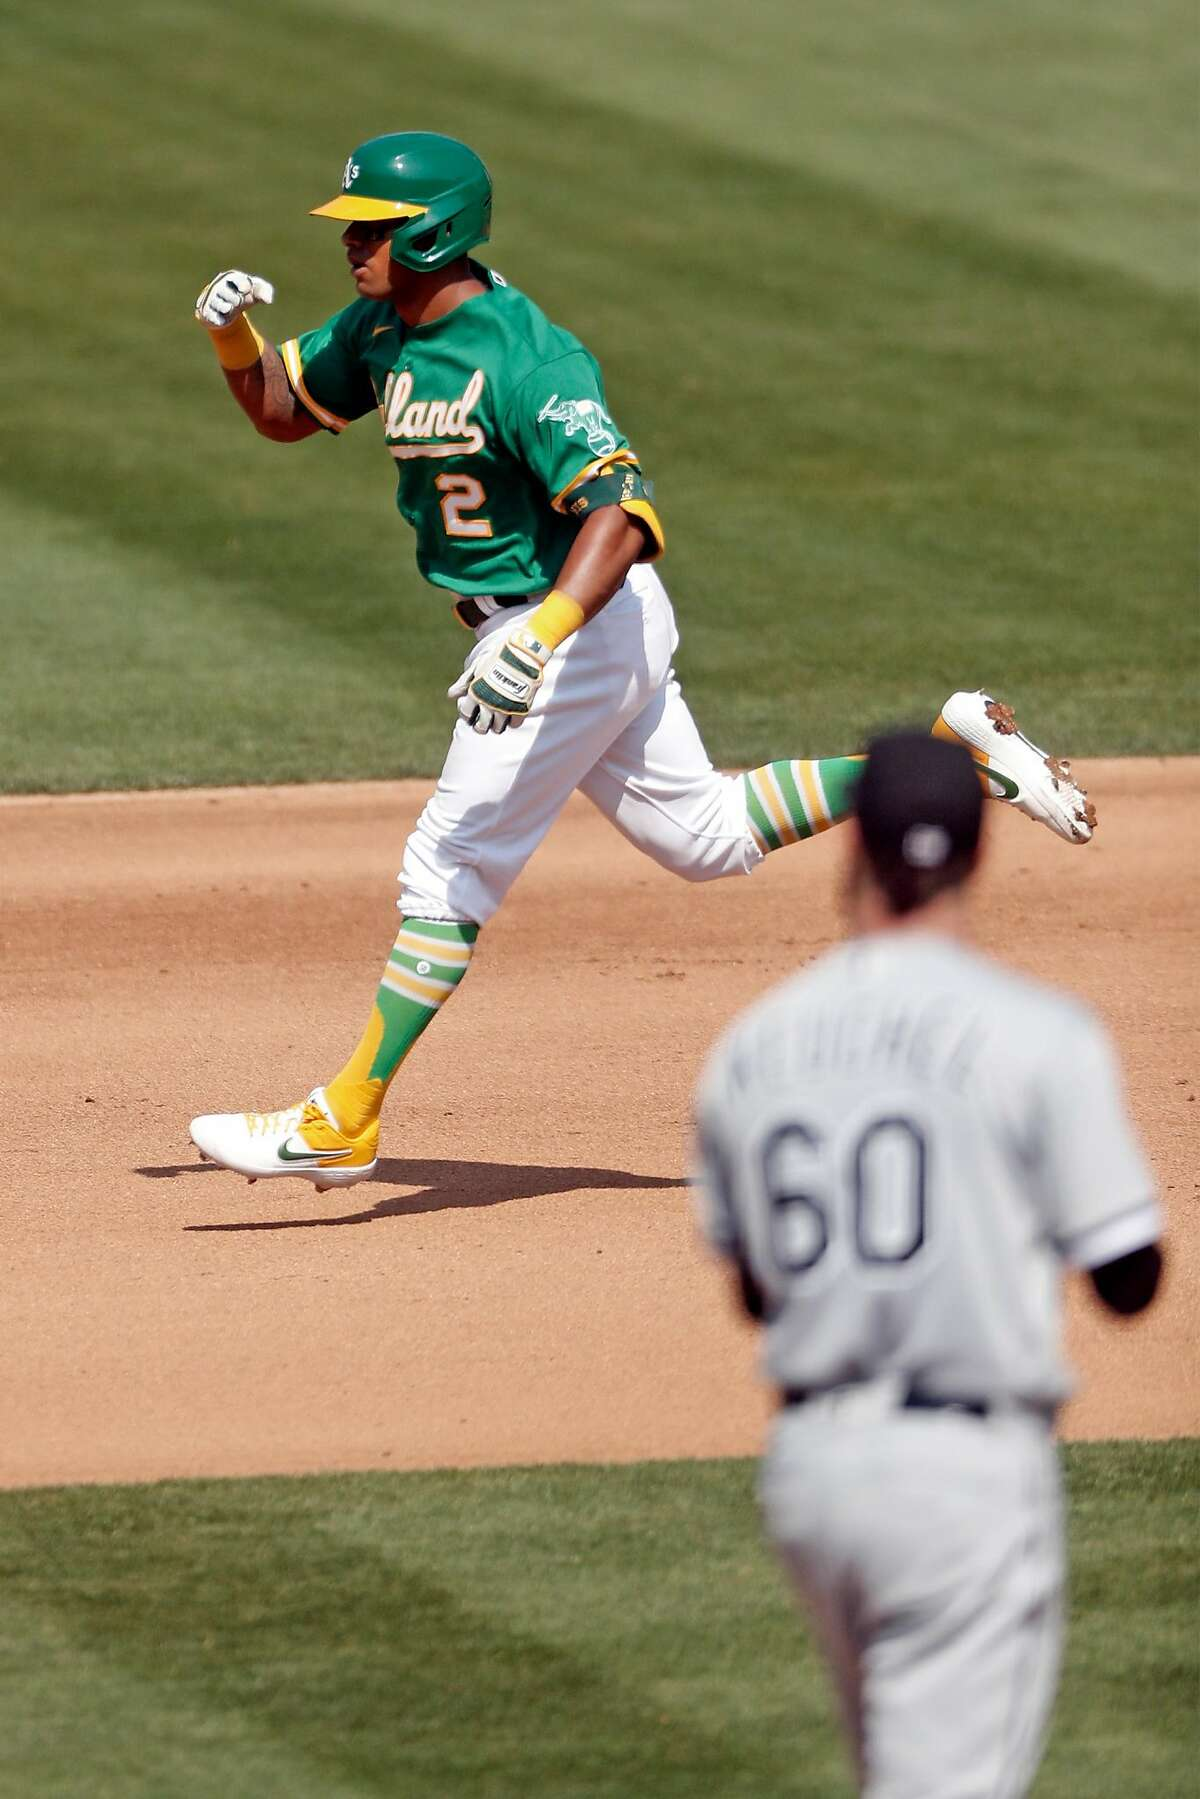 Oakland Athletics' Khris Davis reacts to his 4th inning solo home run against Chicago White Sox' Dallas Kuechel during American League Wild Card Series Game 2 at Oakland Coliseum in Oakland, Calif., on Wednesday, September 30, 2020.